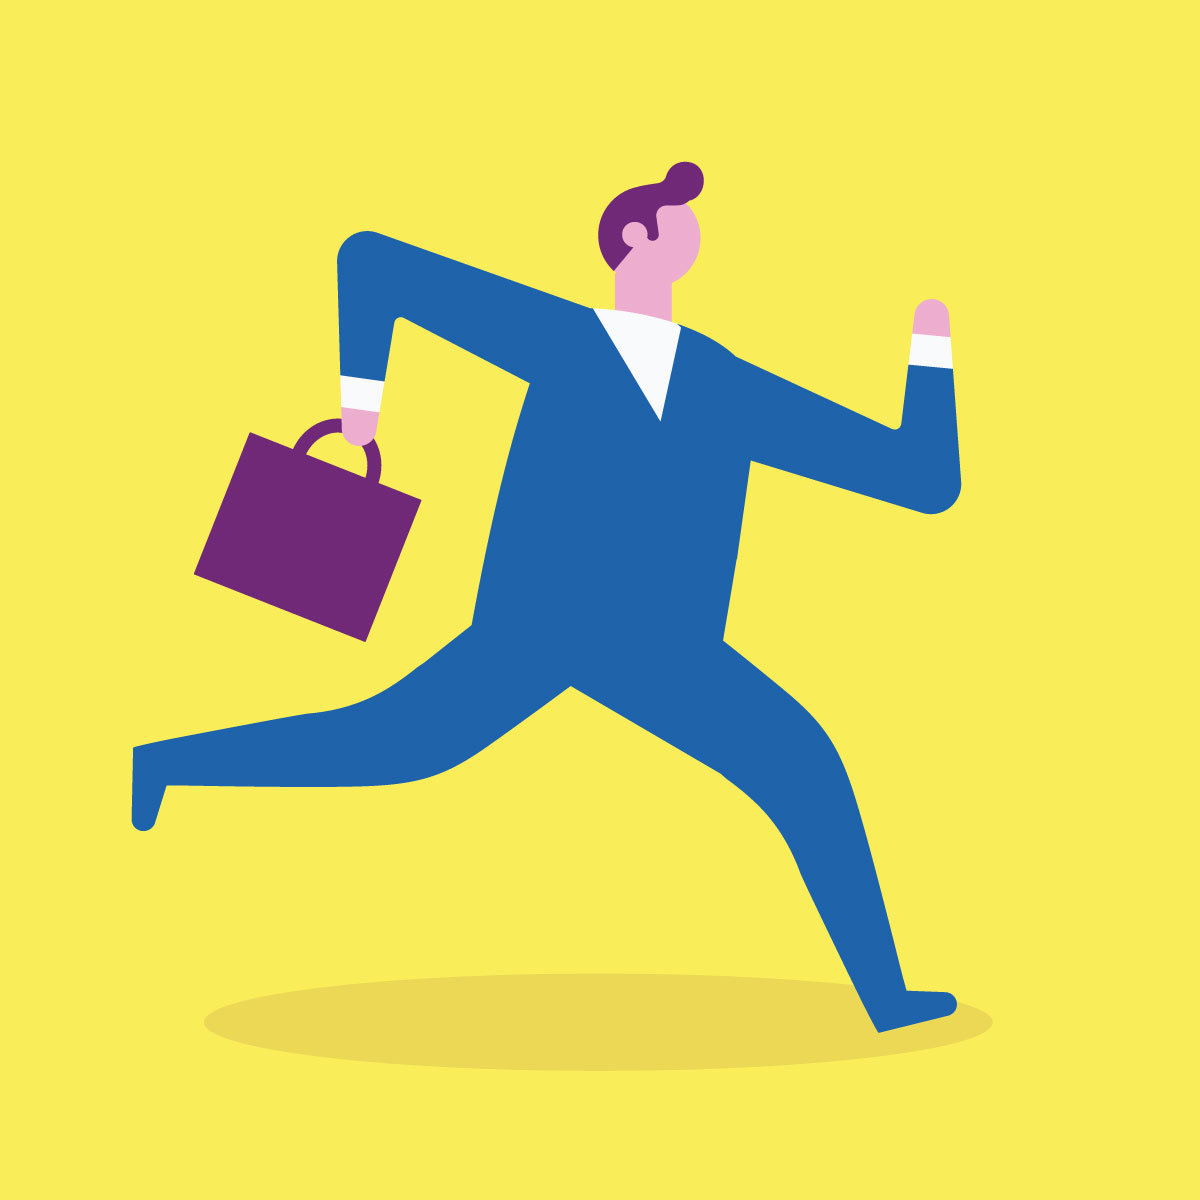 Illustration of businessman running with briefcase.